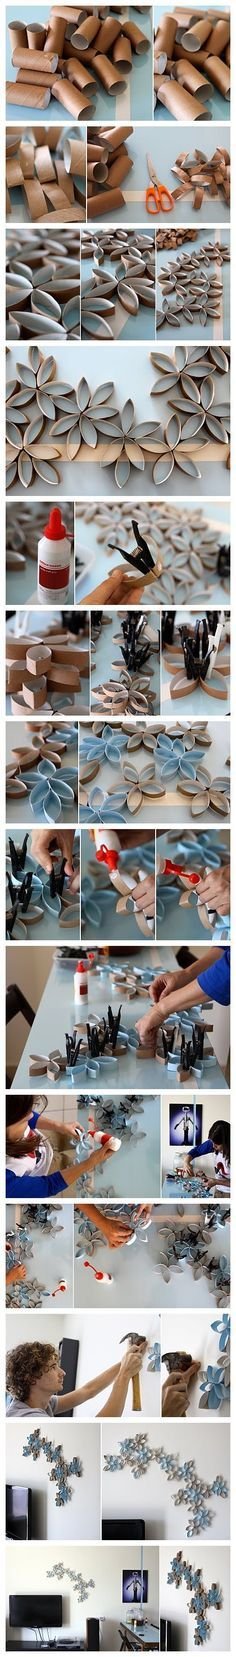 http://www.2uidea.com/category/Wall-Art/ How to DIY toilet paper roll wall art project